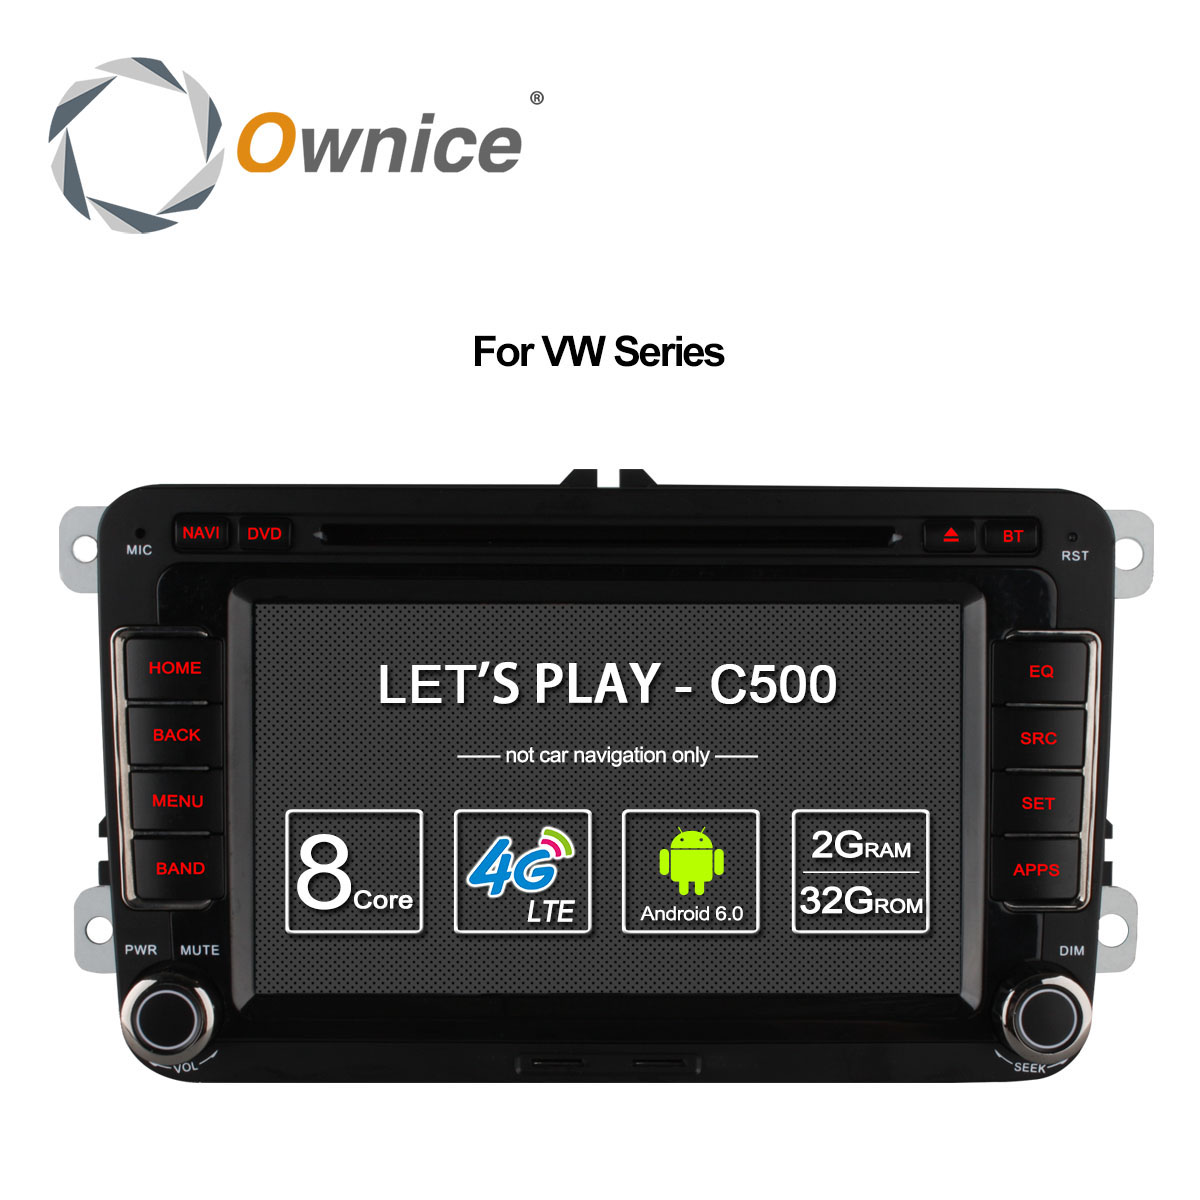 Ownice Android 6.0 8 Core 32G ROM Car DVD Player Volkswagen Passat POLO GOLF Skoda Seat Leon GPS Navi 4G LTE Network